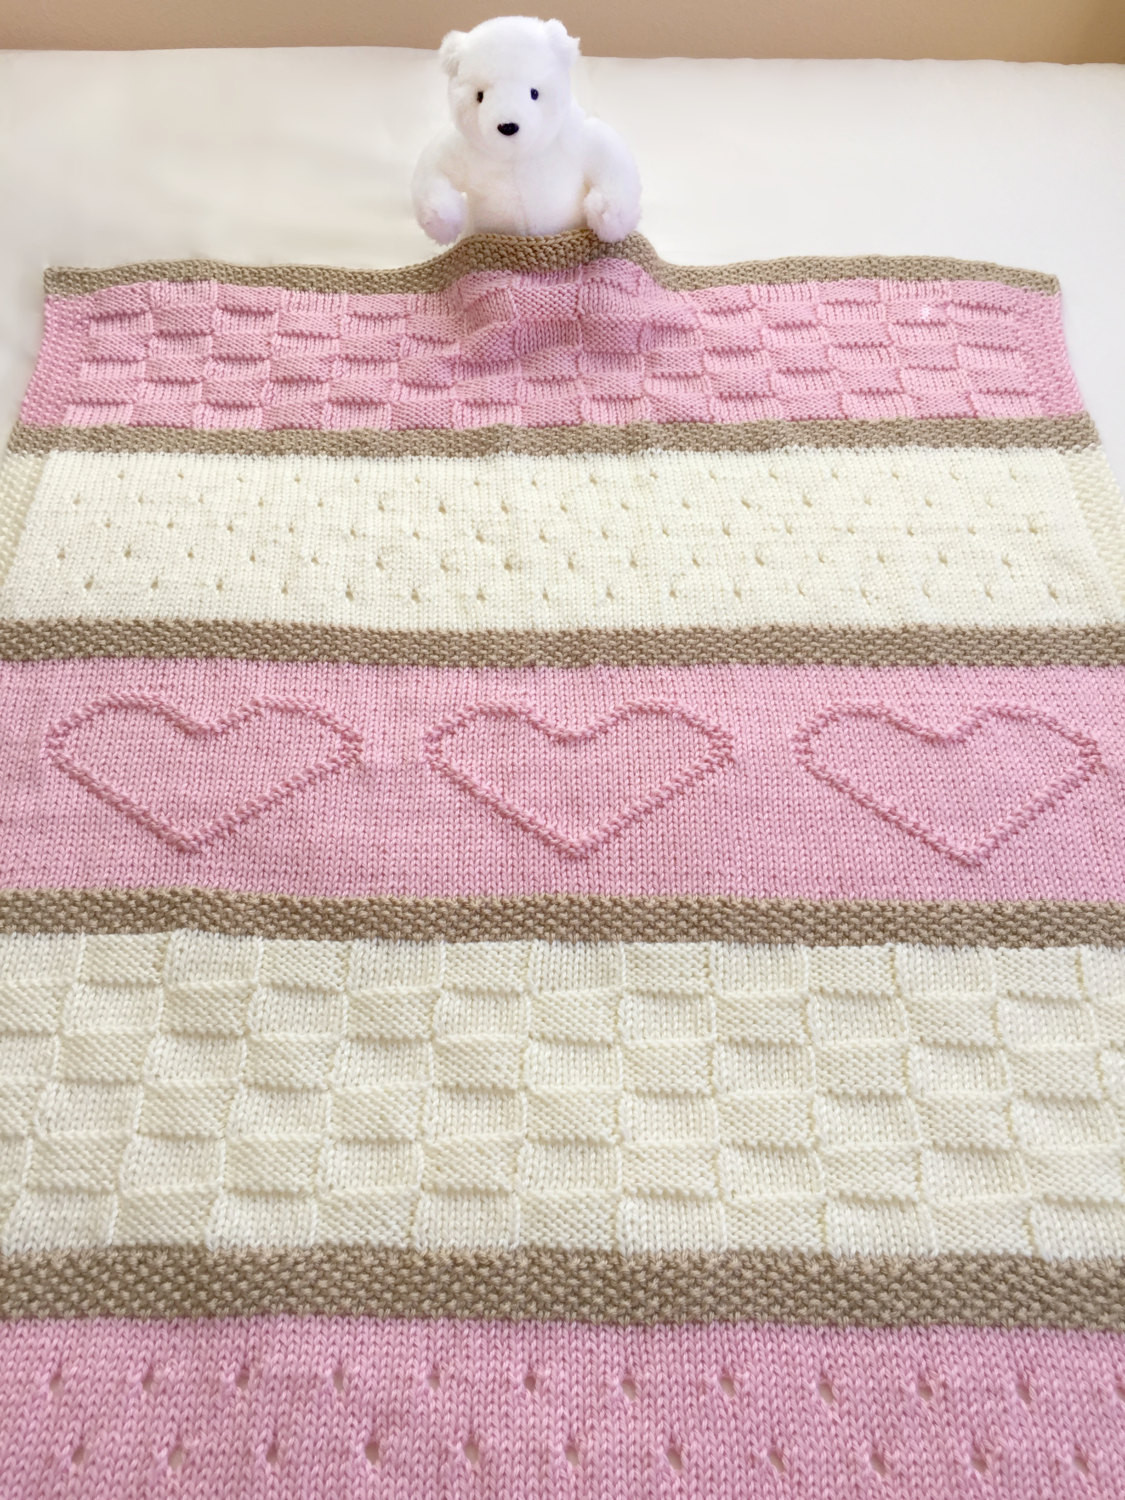 Baby Afghan Knitting Patterns Awesome Baby Blanket Pattern Knit Baby Blanket by Deboraholearypattern Of Superb 40 Images Baby Afghan Knitting Patterns